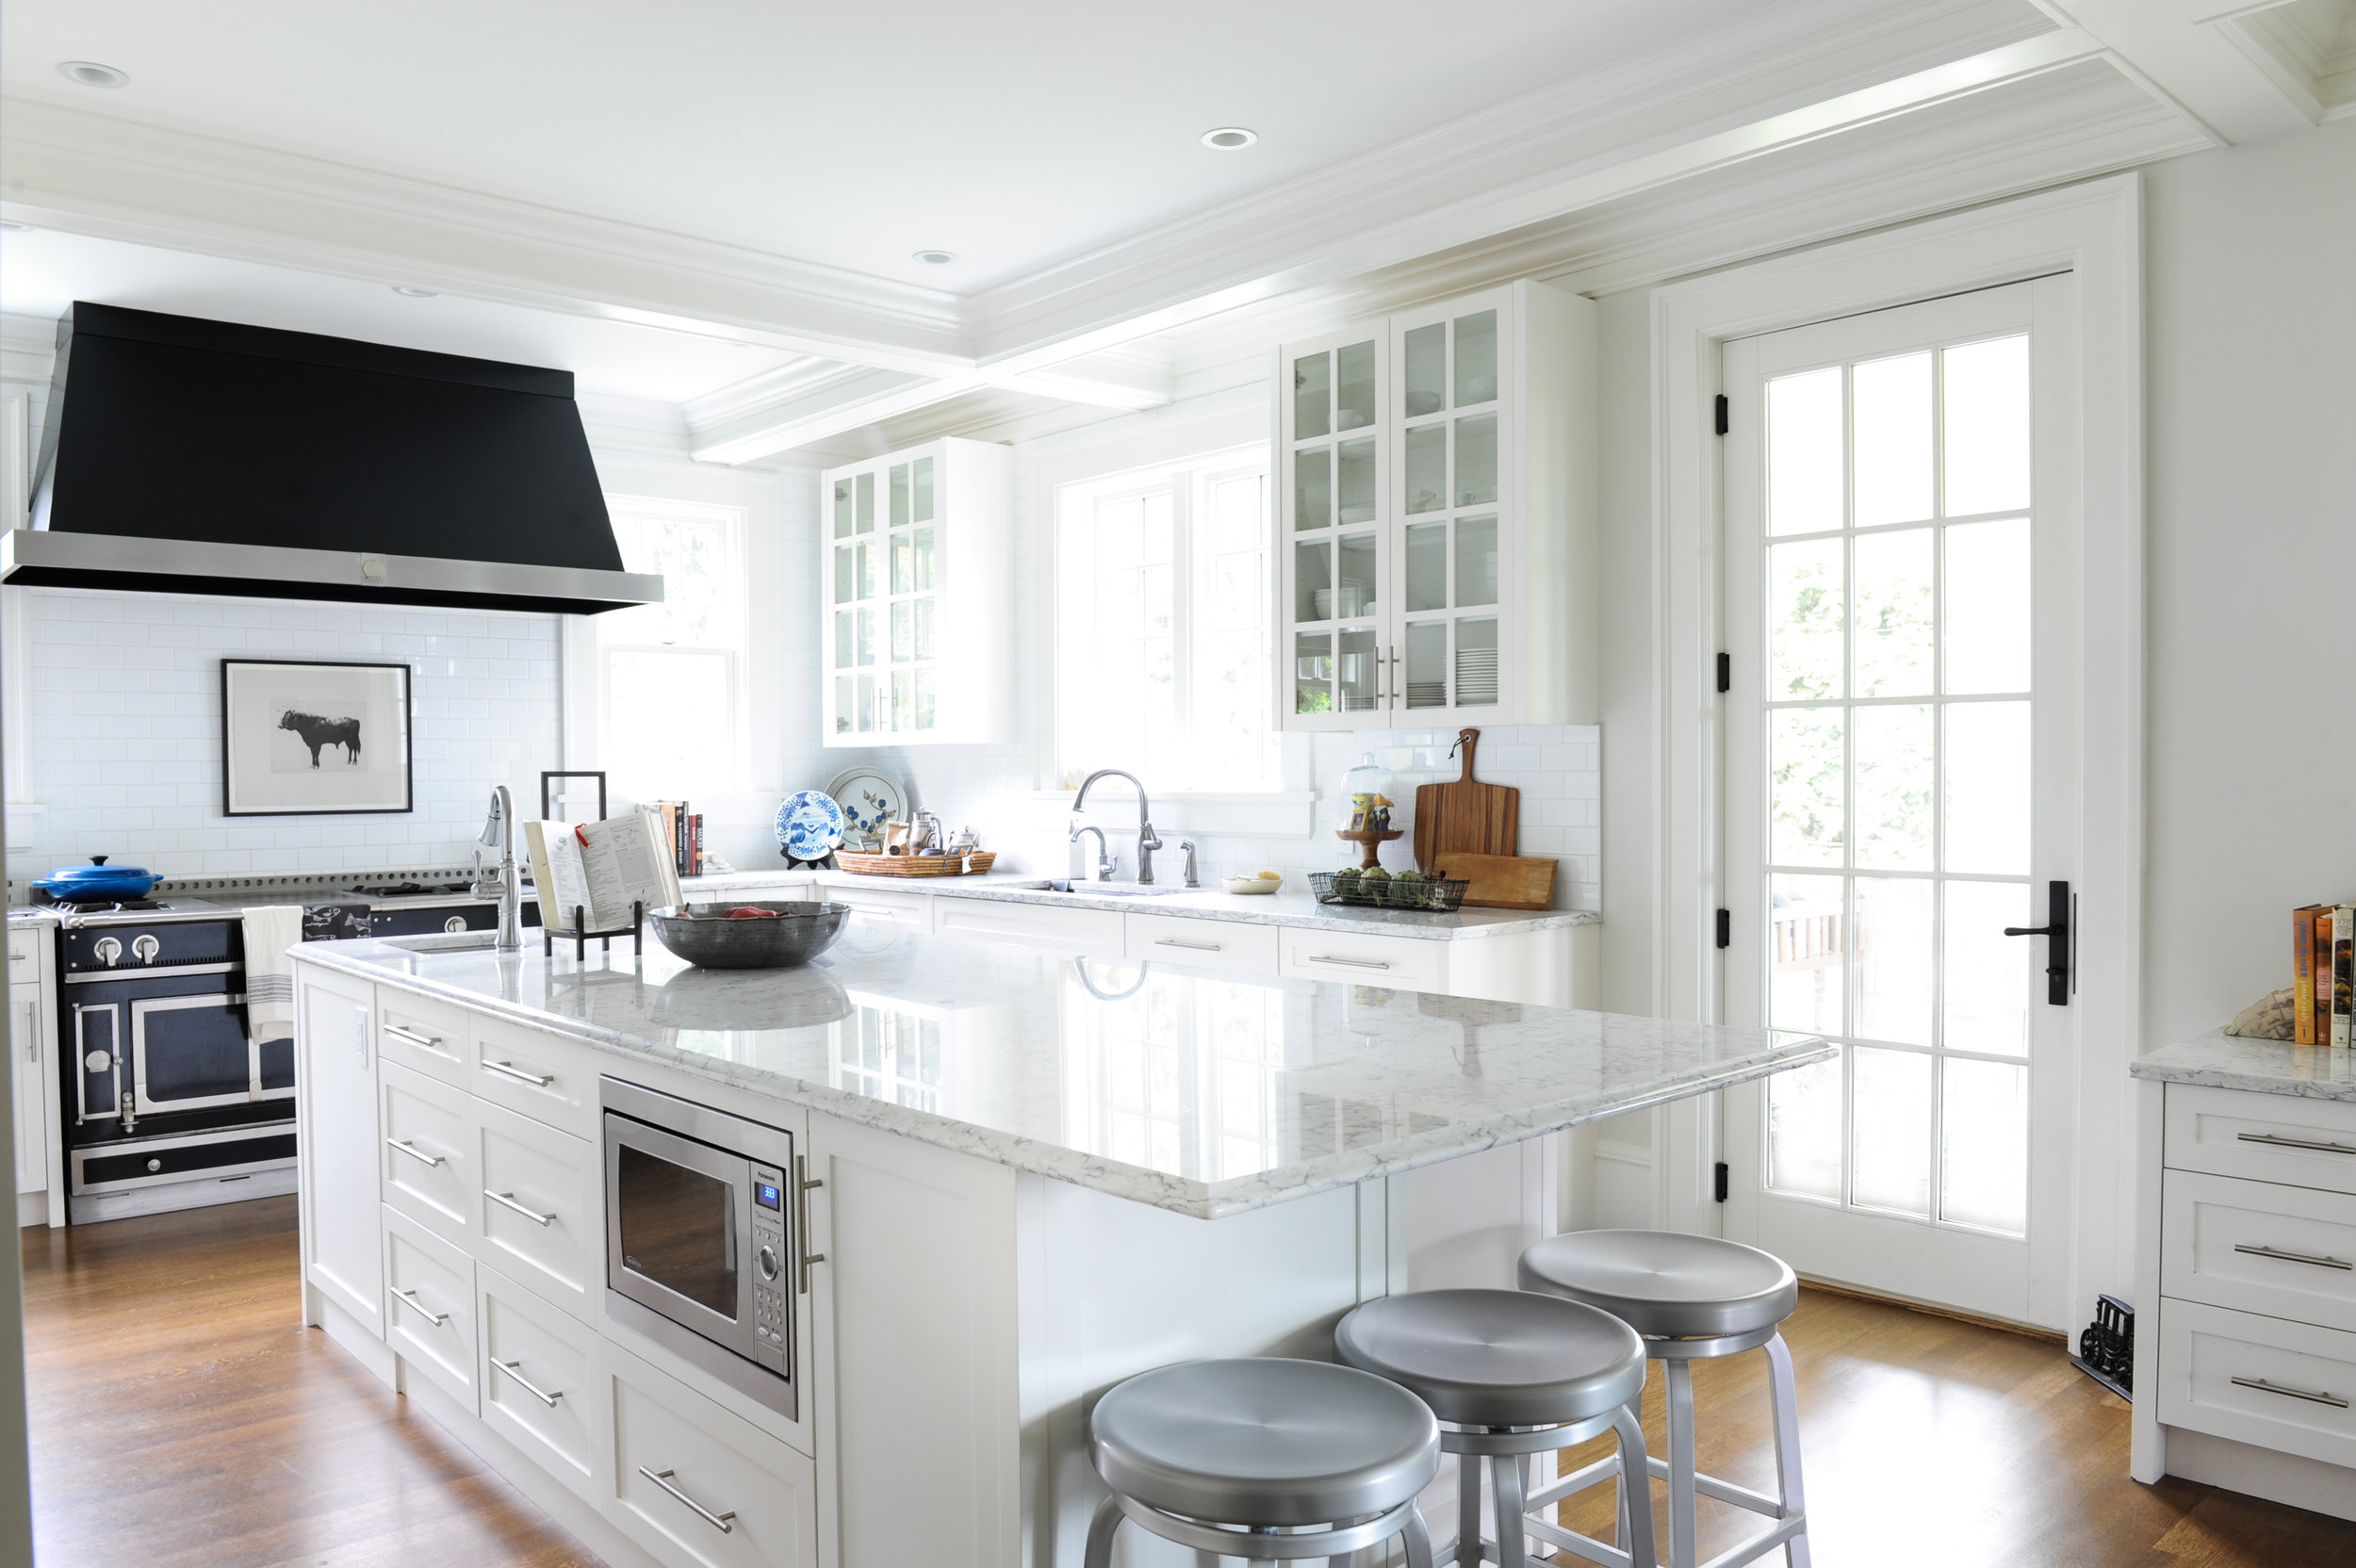 A large kitchen island with marble countertops sits in the middle of this spacious and bright kitchen. Metal bar stools are located under the end of the island and on the other end is a large antique looking stove cooktop and oven. A large matte black range hood sits above a painting of a cow, which is situated above the stove.